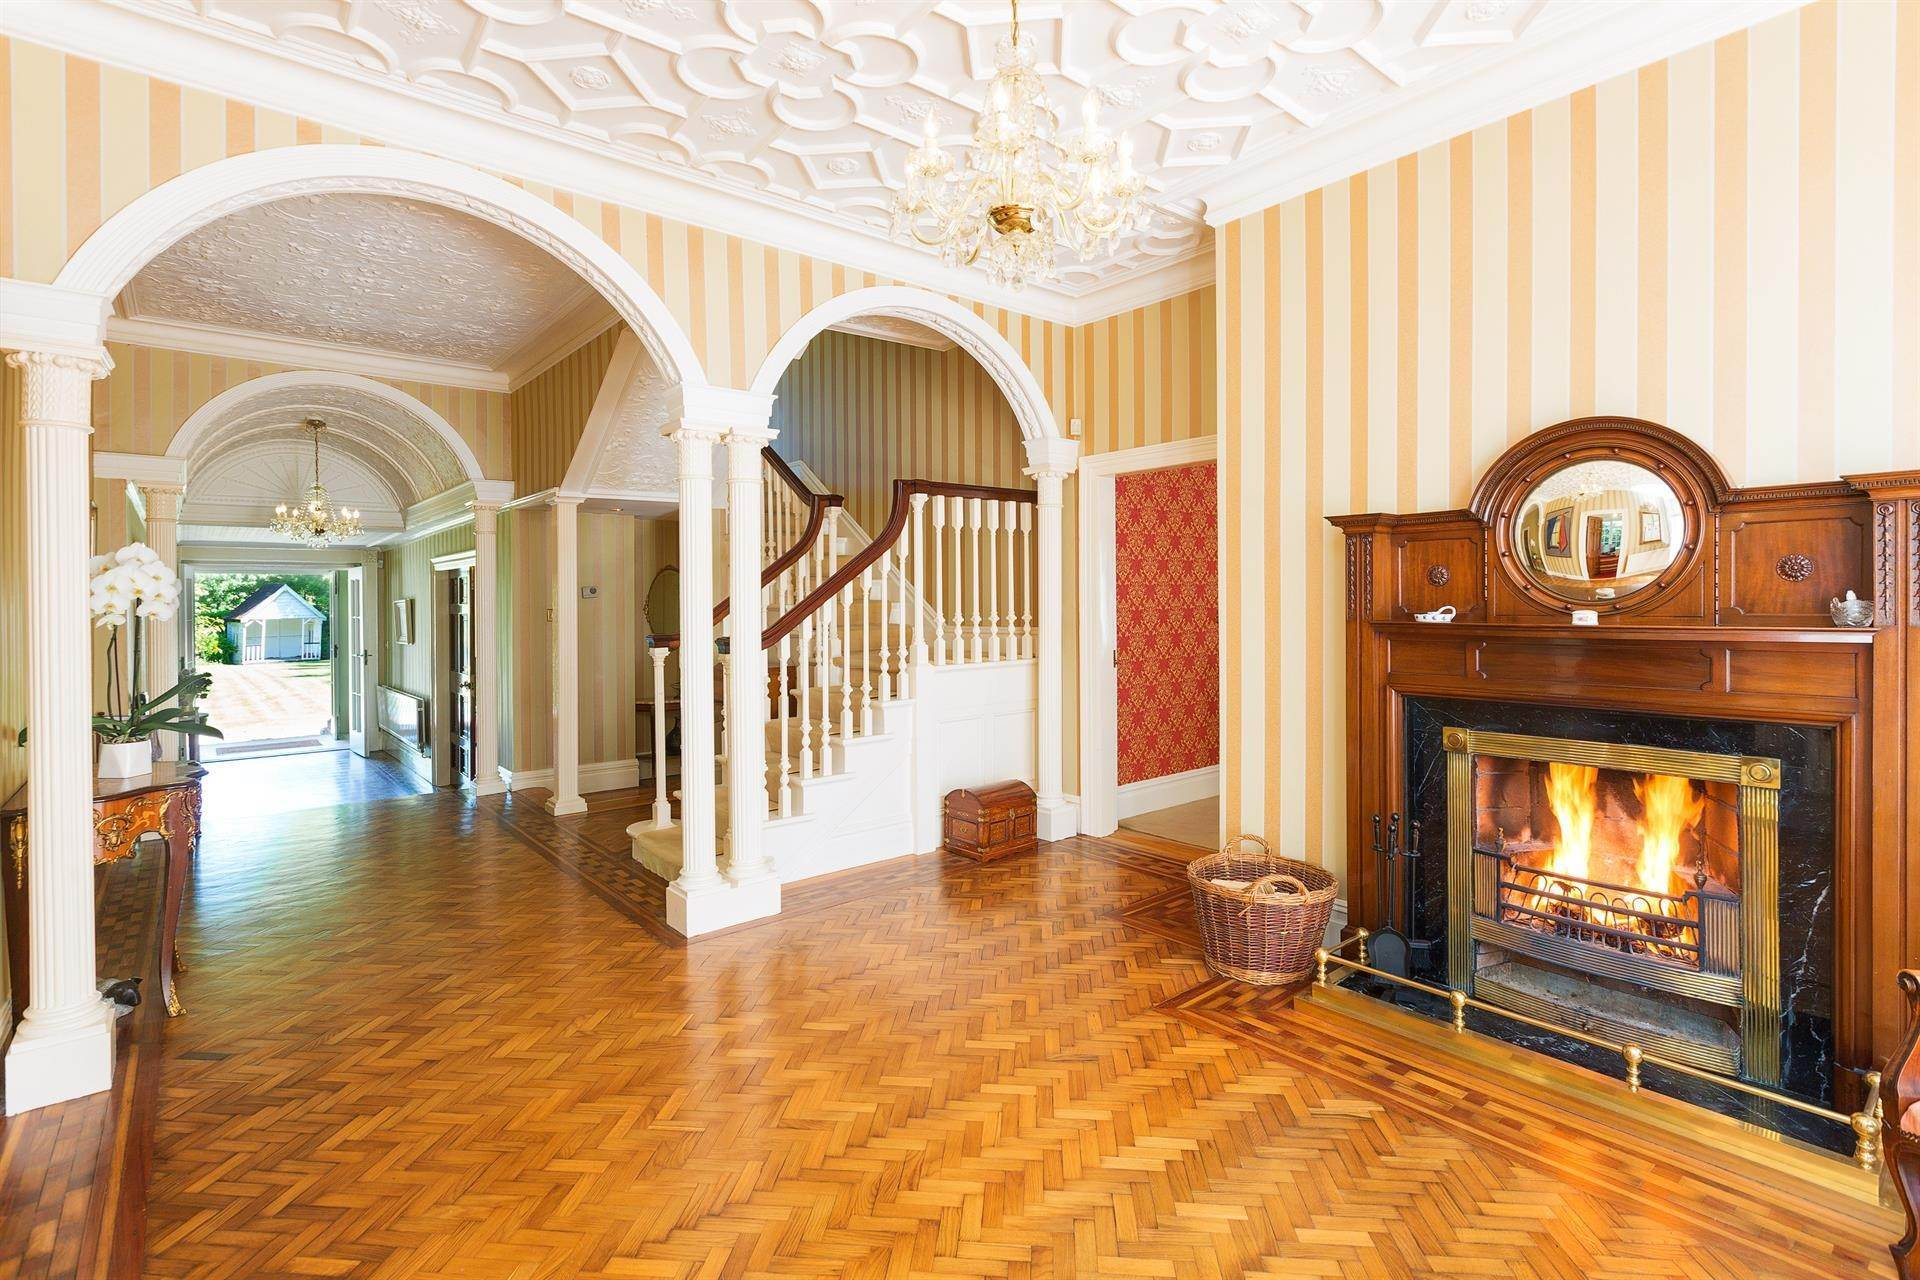 3. Single Family Home for Sale at Foxrock, Ireland